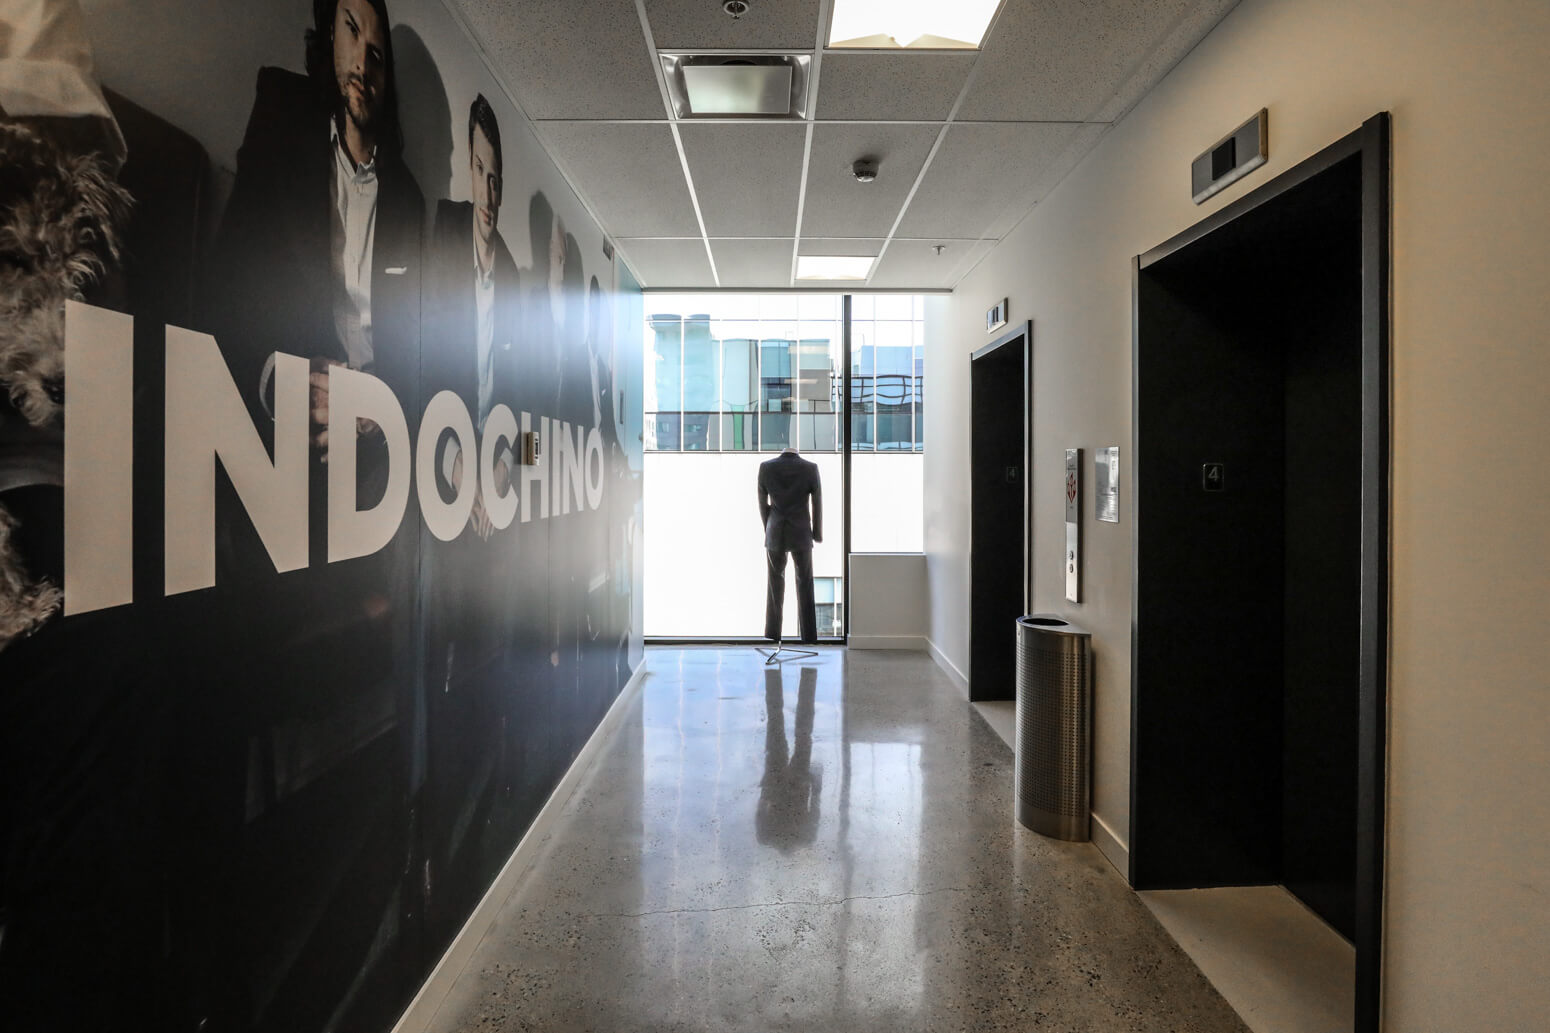 Indochino_Vancouver_Office_Killer_Spaces_Techvibes-15